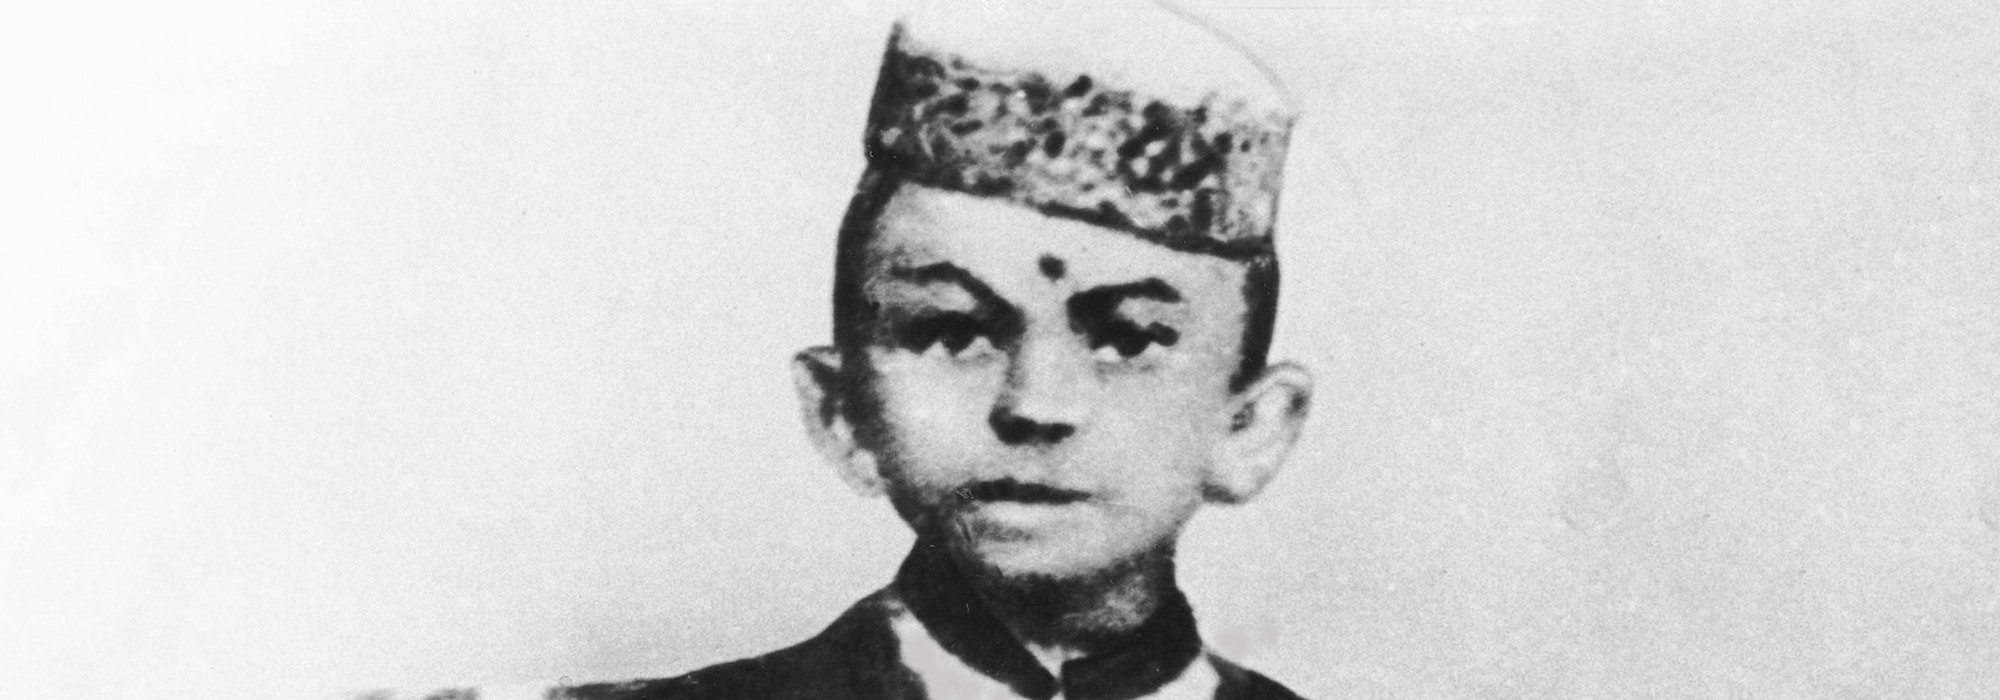 Gandhi at age 7, Rajkot, Gujarat